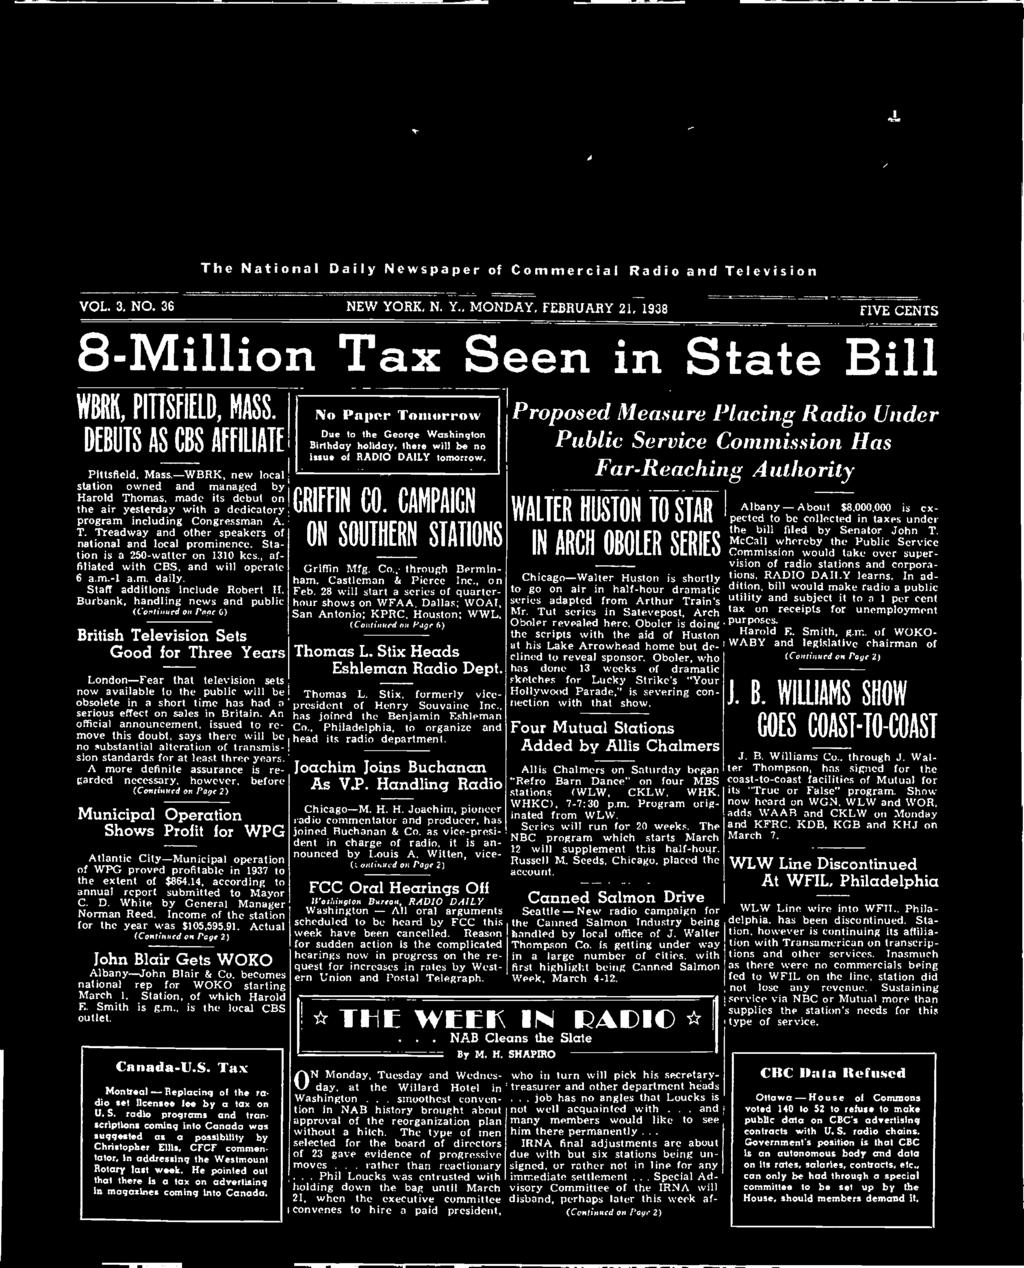 . job VOL. 3. NO. 36 NEW YORK, N. Y., MONDAY, FEBRUARY 21, 1938 8 -Million Tax Seen in State Bill WBRK, PITTSFIELD, MASS.